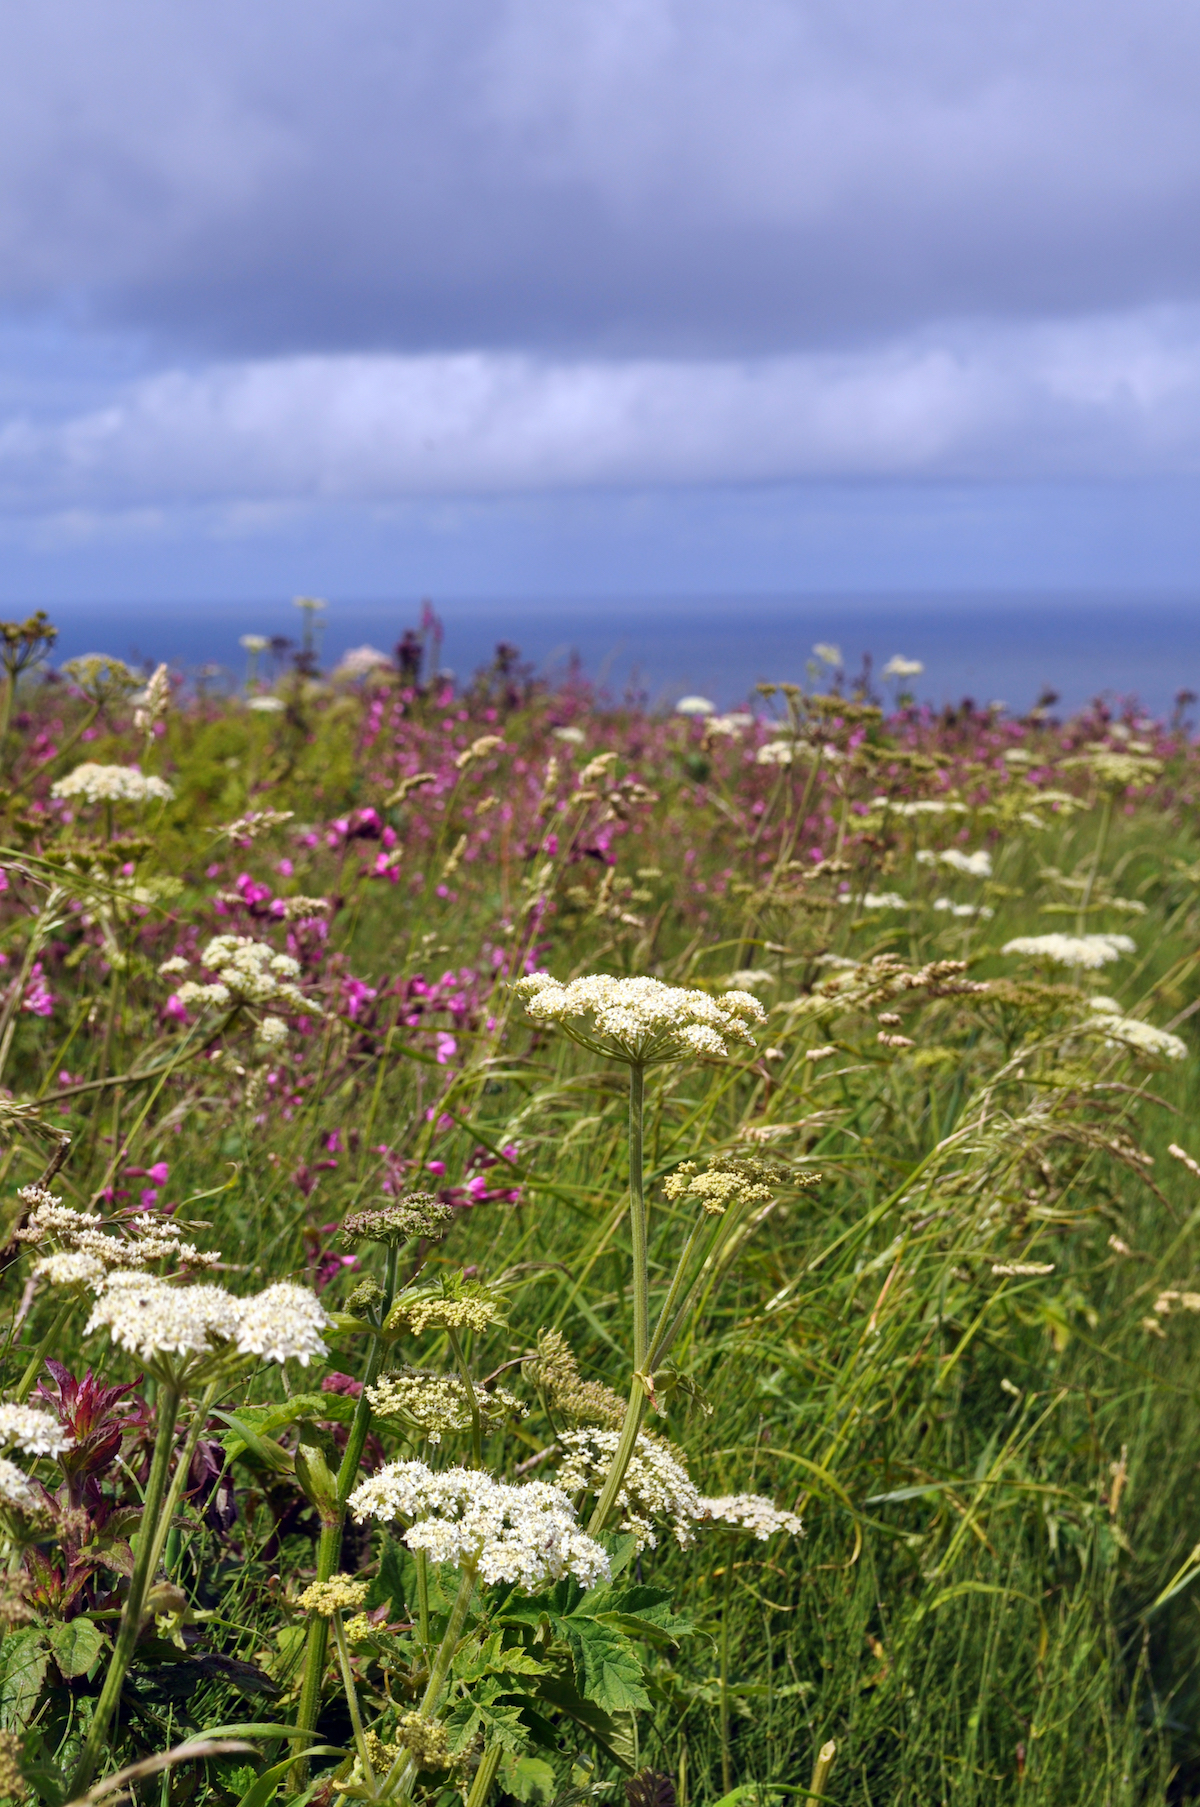 6. Cornish hedgerow in June 2